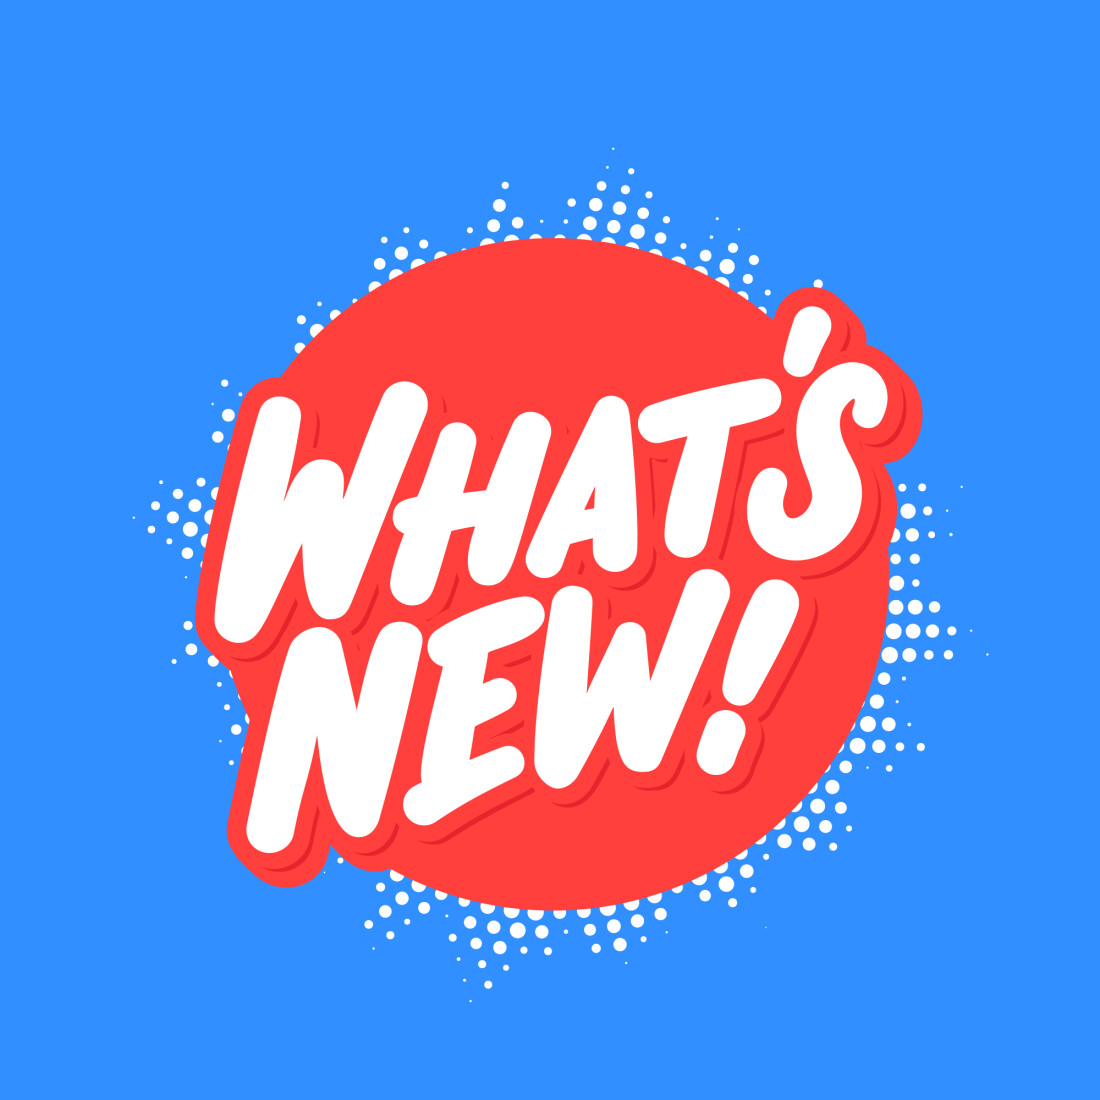 WHAT'S NEW! In white letters backed by a red circle surrounded by a blue background